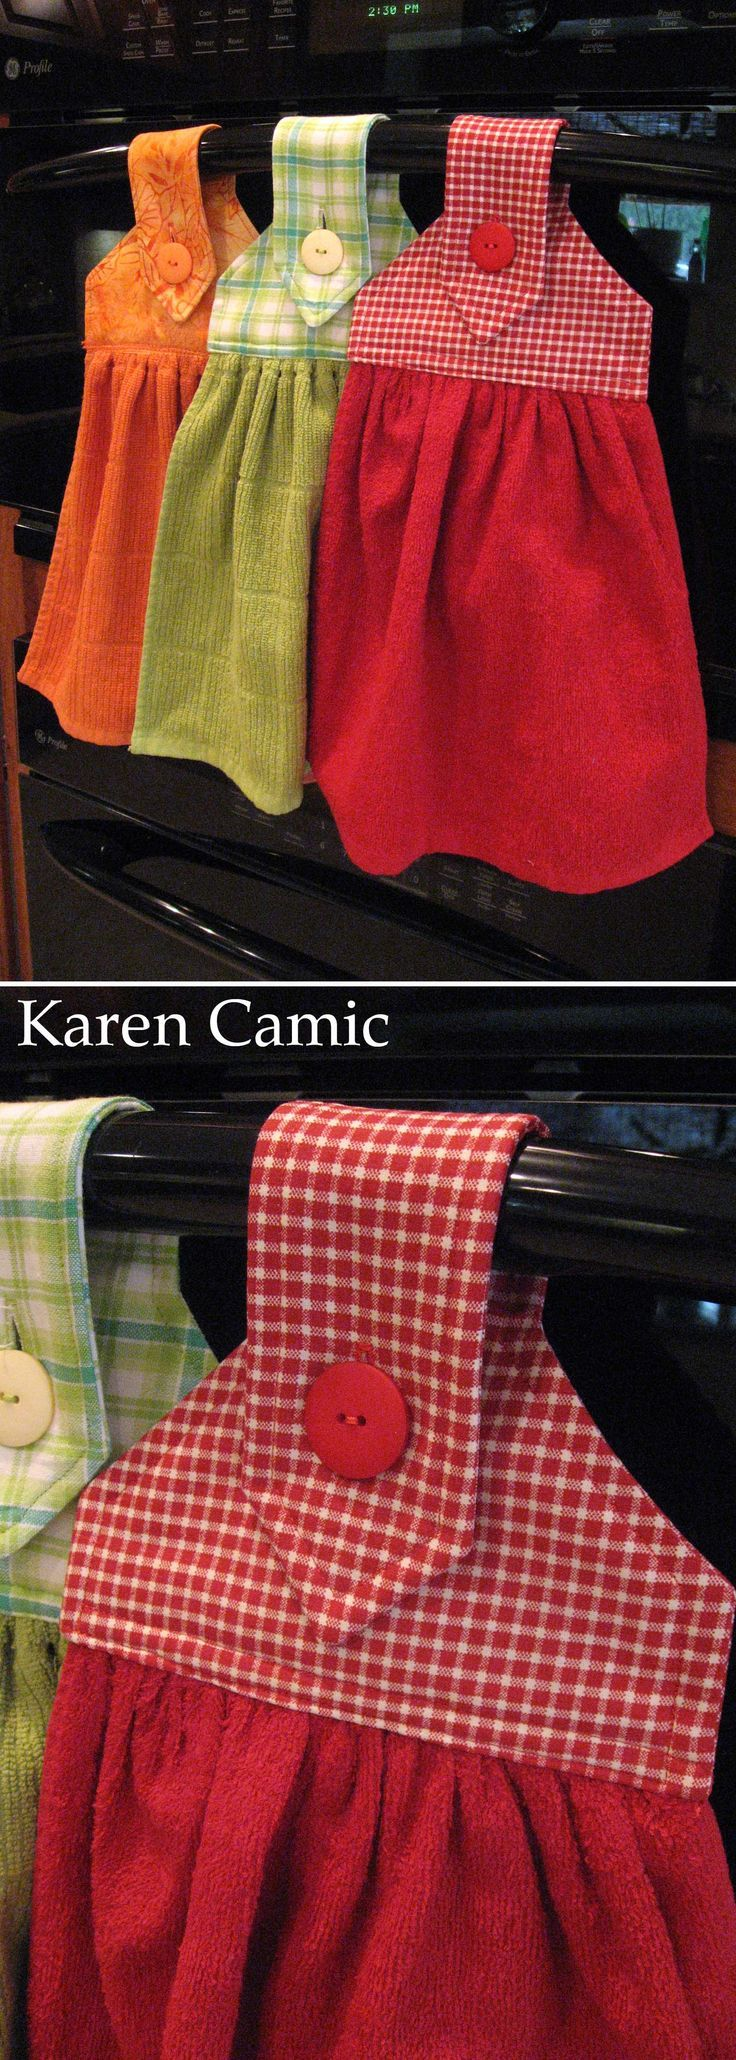 DIY Oven Hand Towels